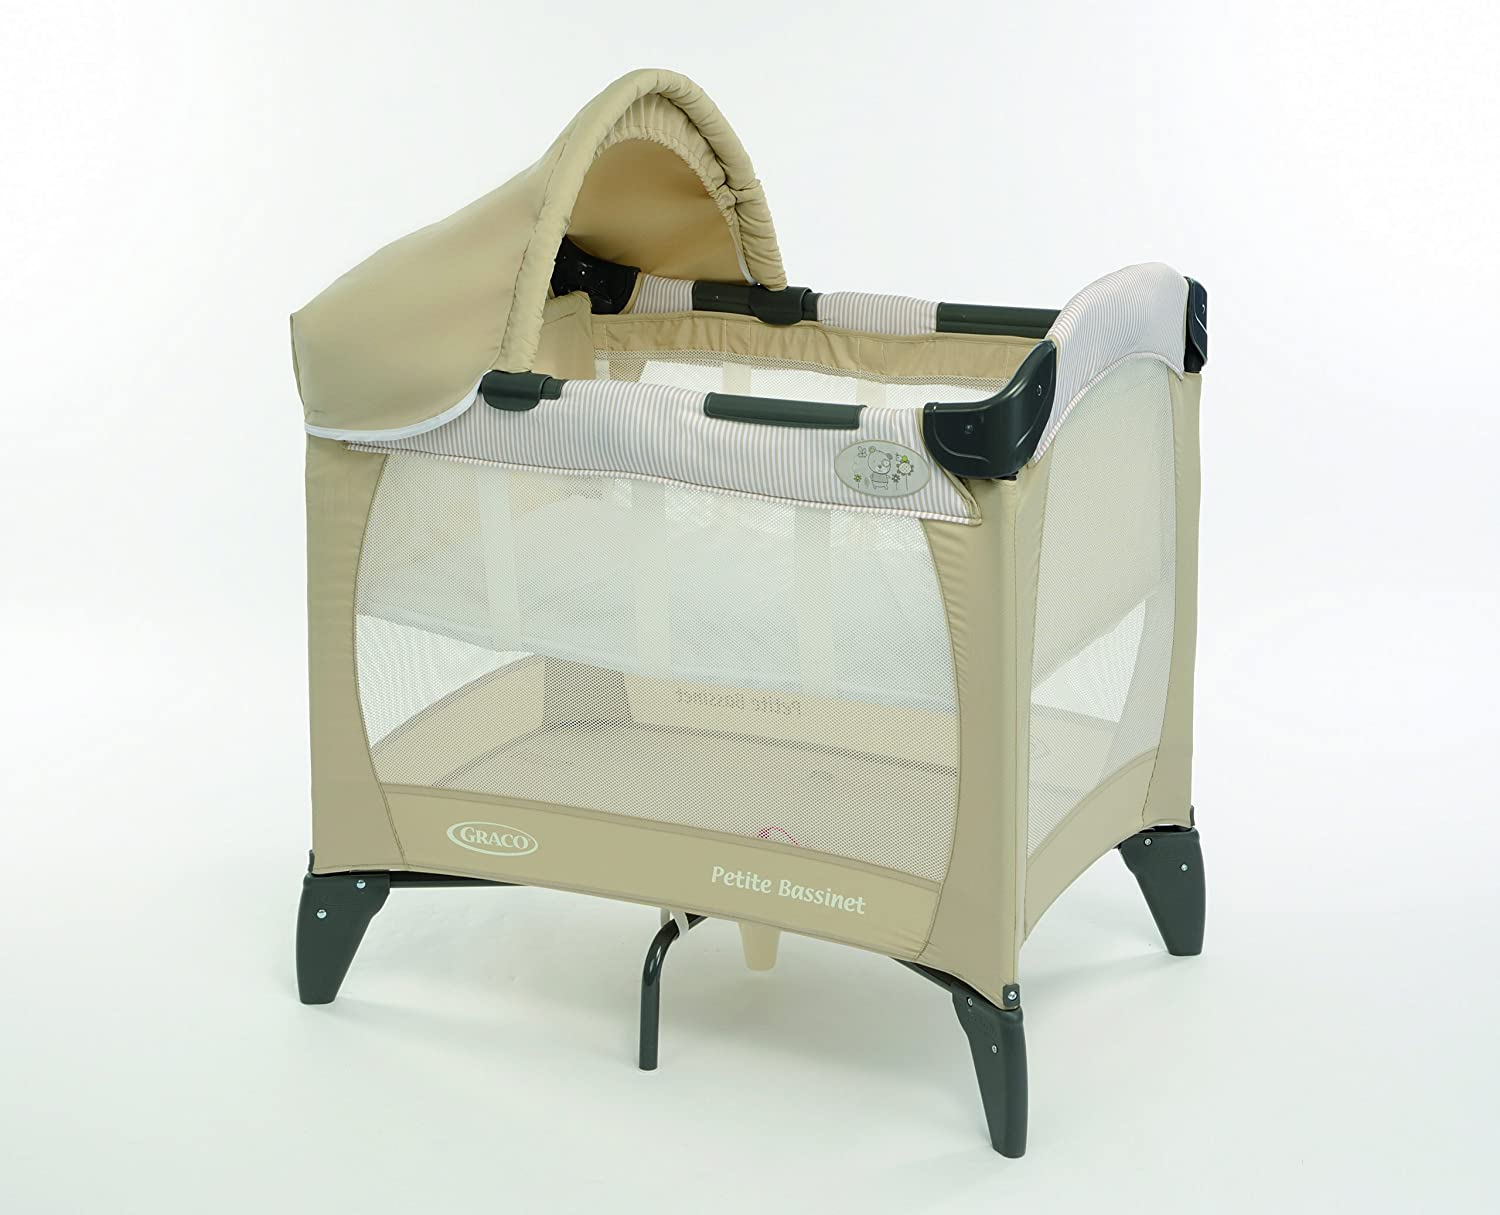 graco bedroom bassinet. graco bedroom bassinet